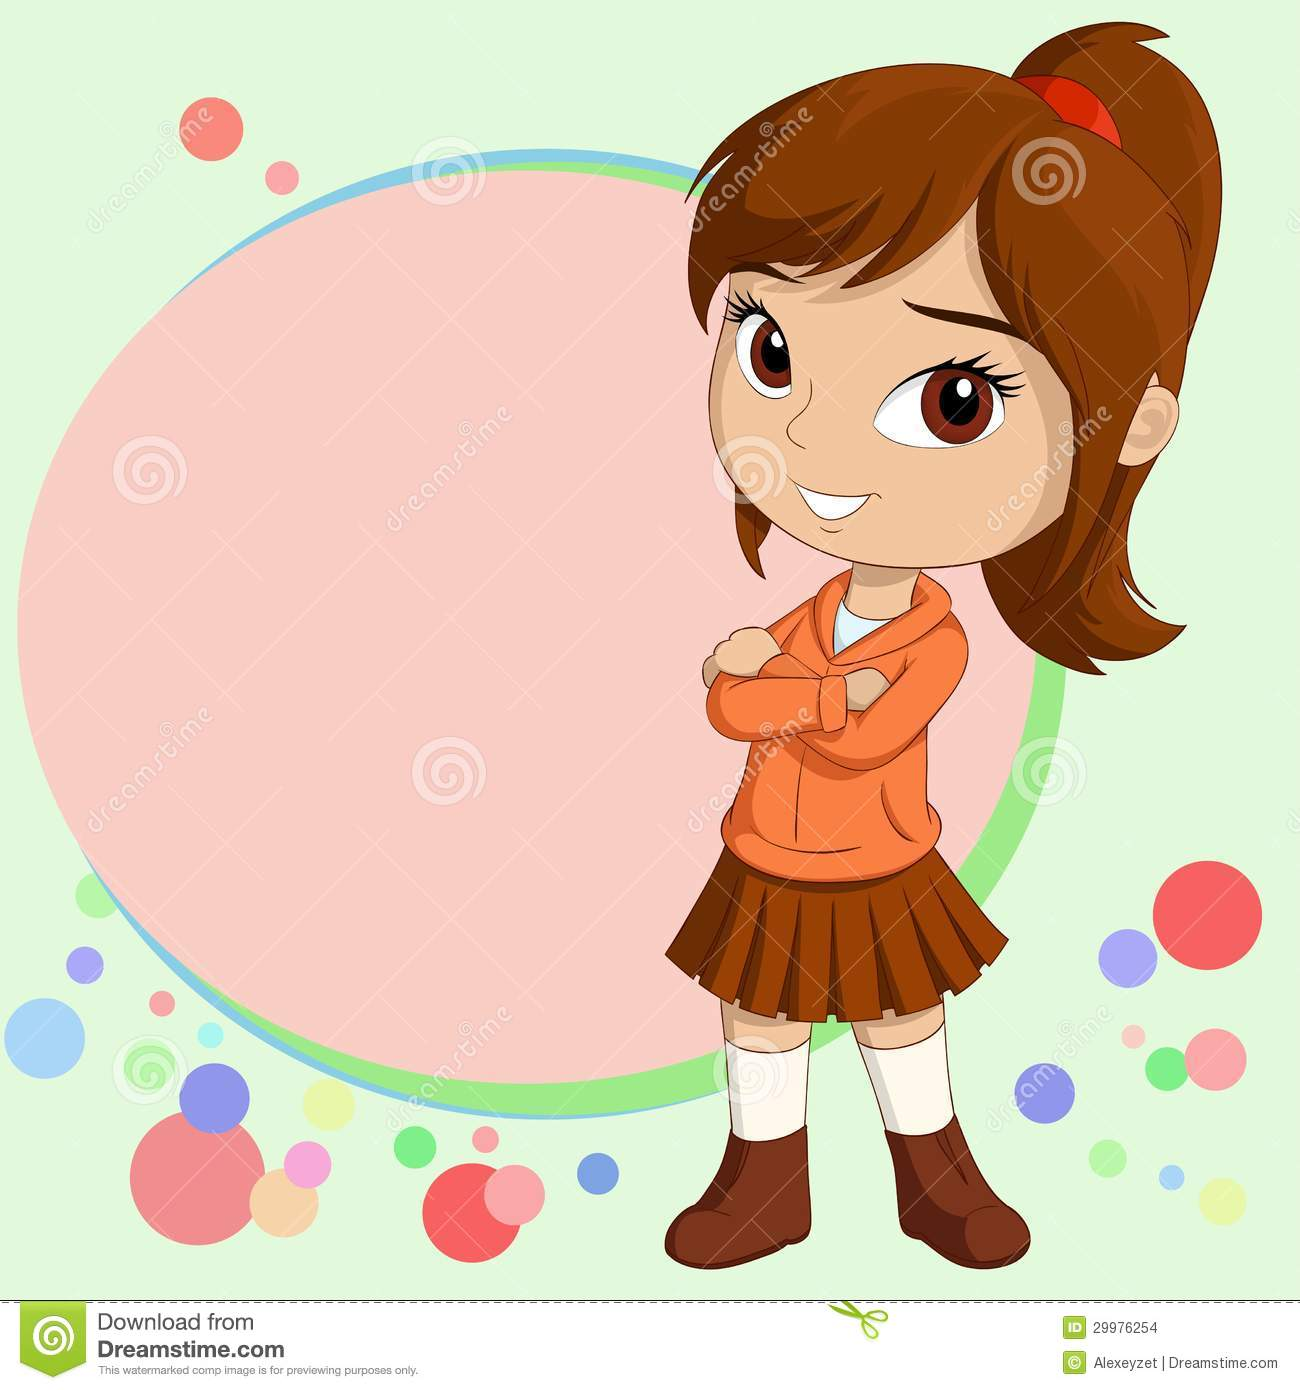 7 Cute Little Girl Vector Images